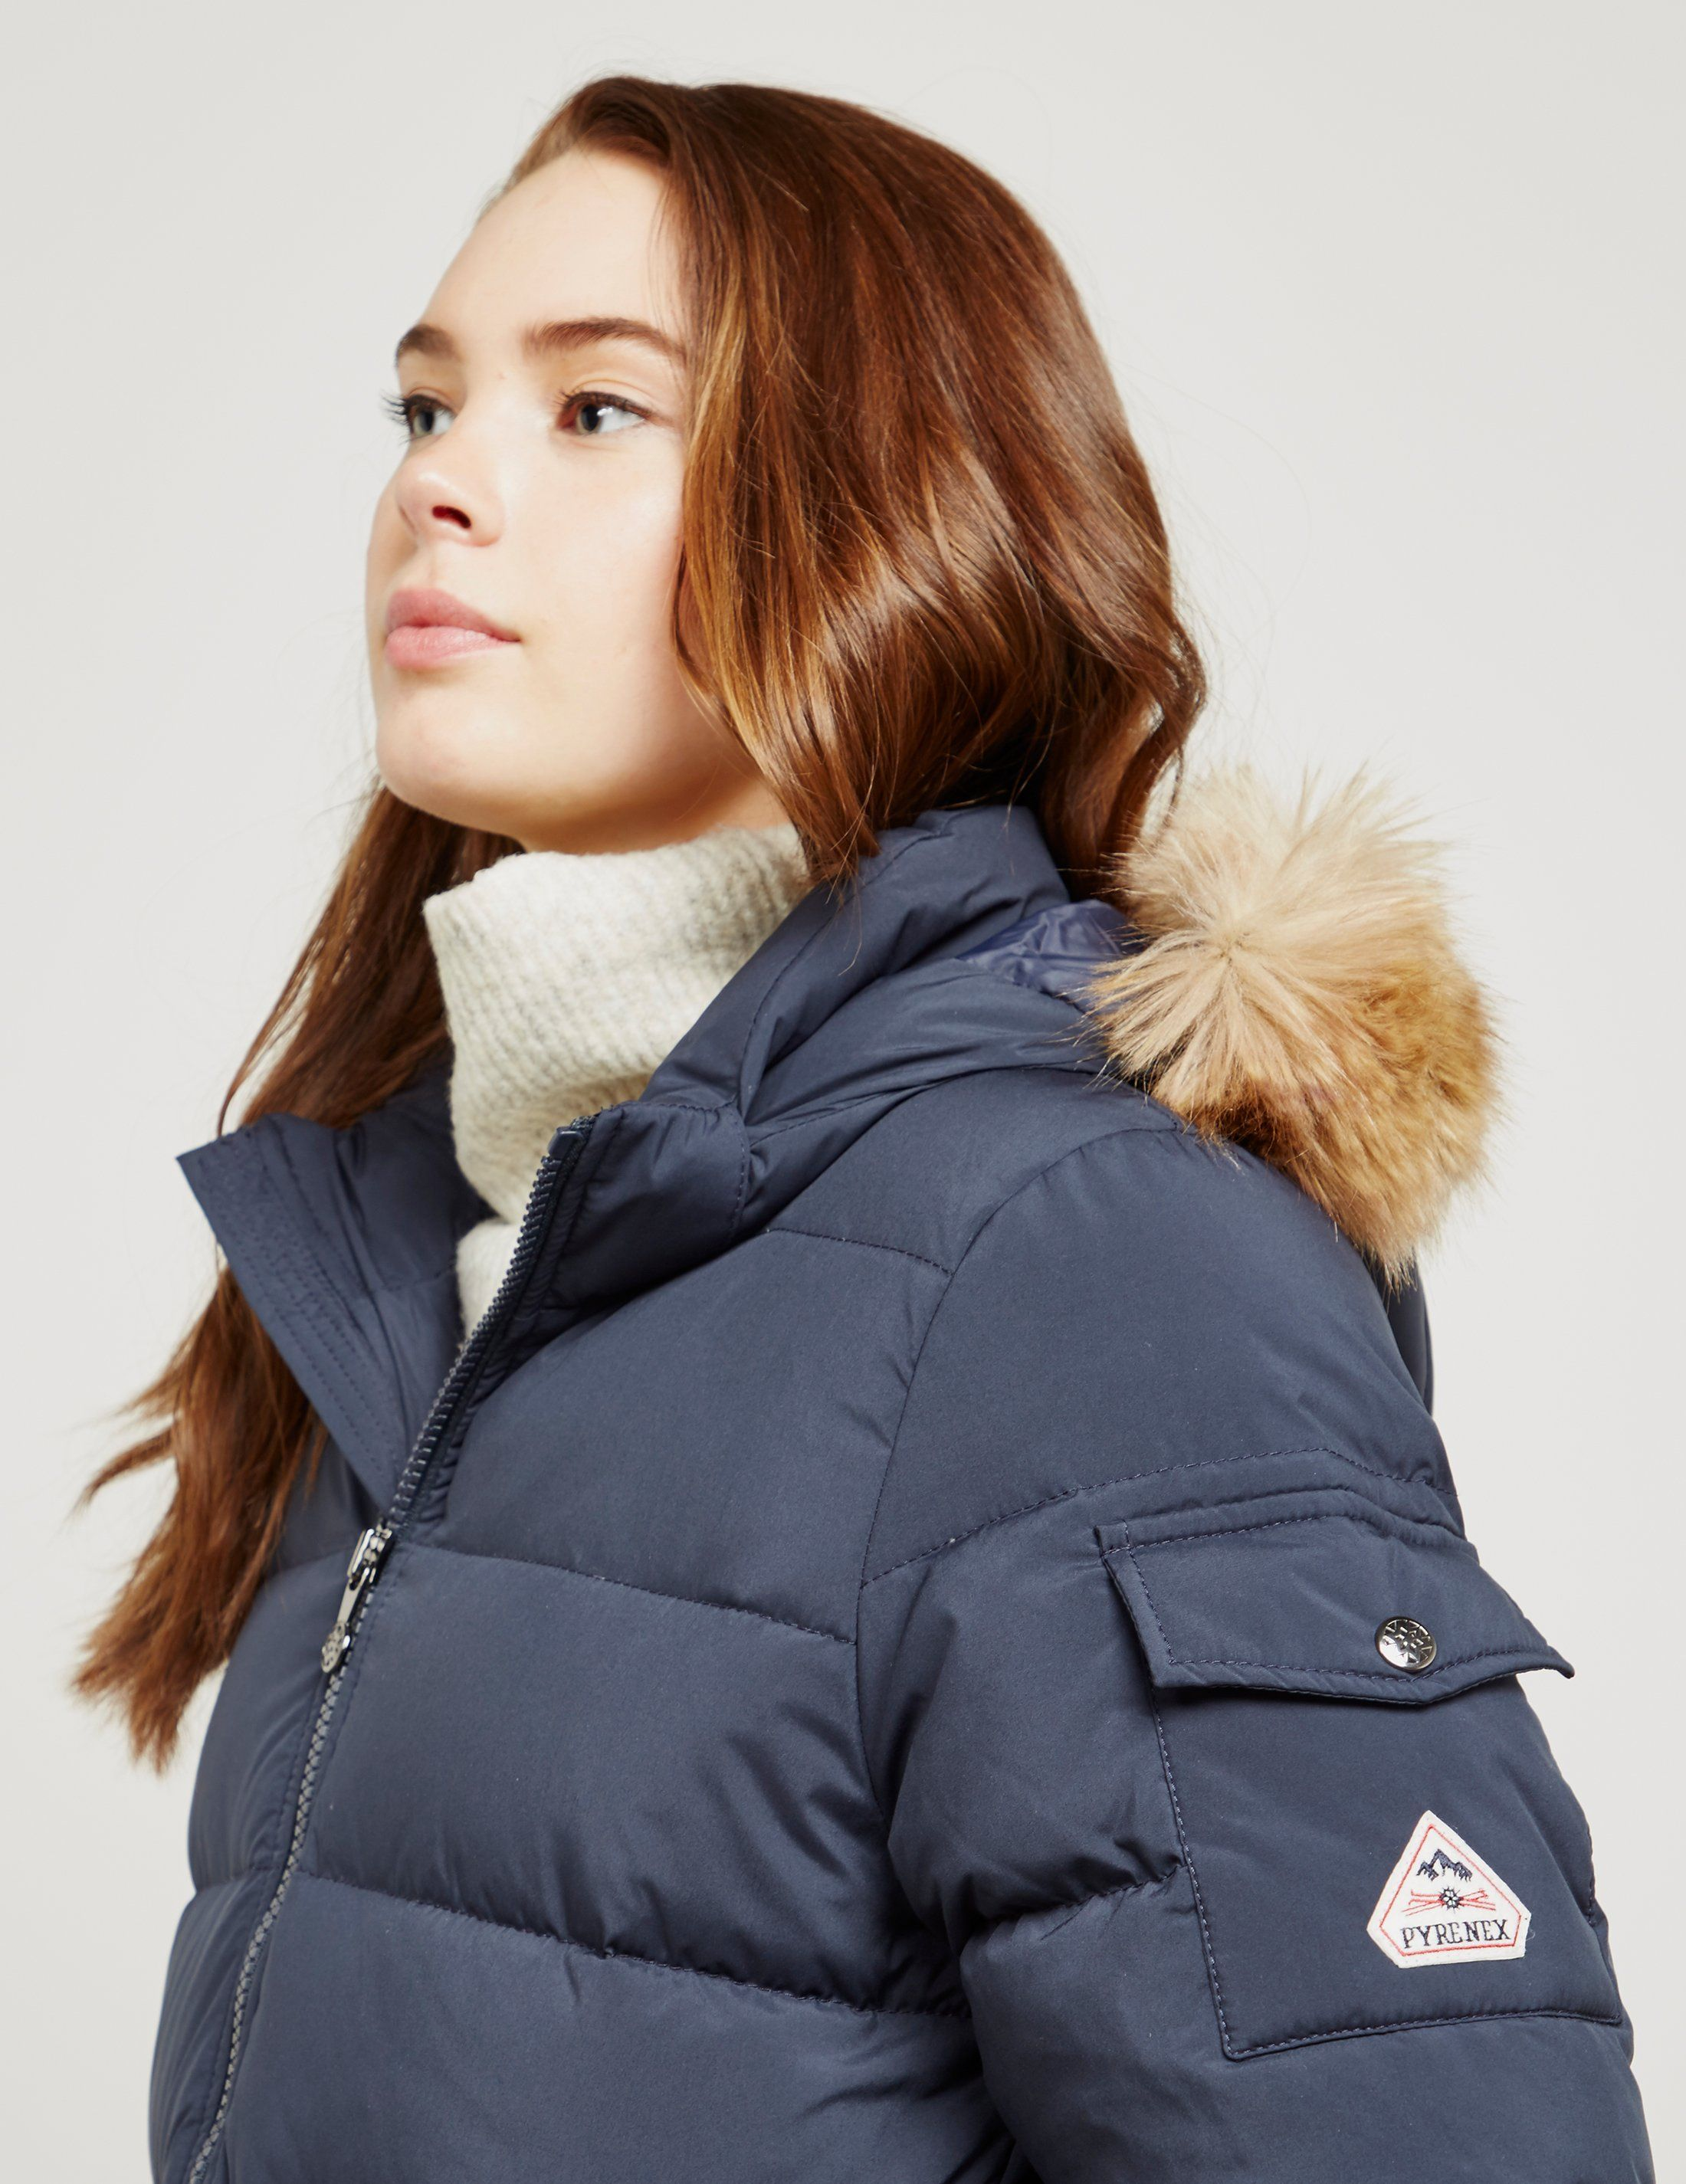 Pyrenex Authentic Soft Padded Jacket - Online Exclusive